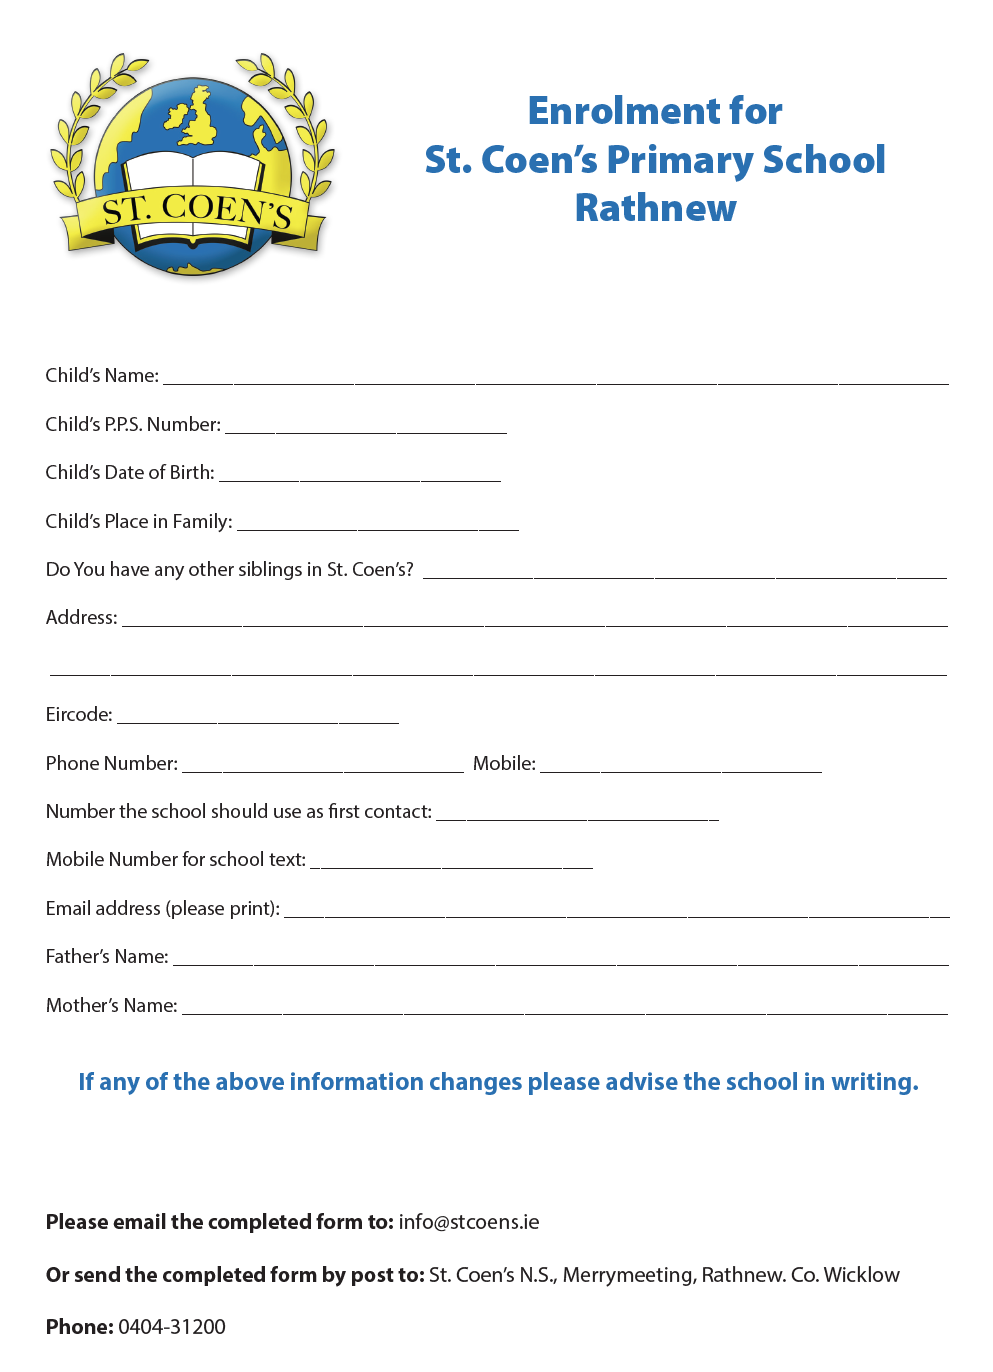 Enrolment for St. Coen's Primary School Rathnew